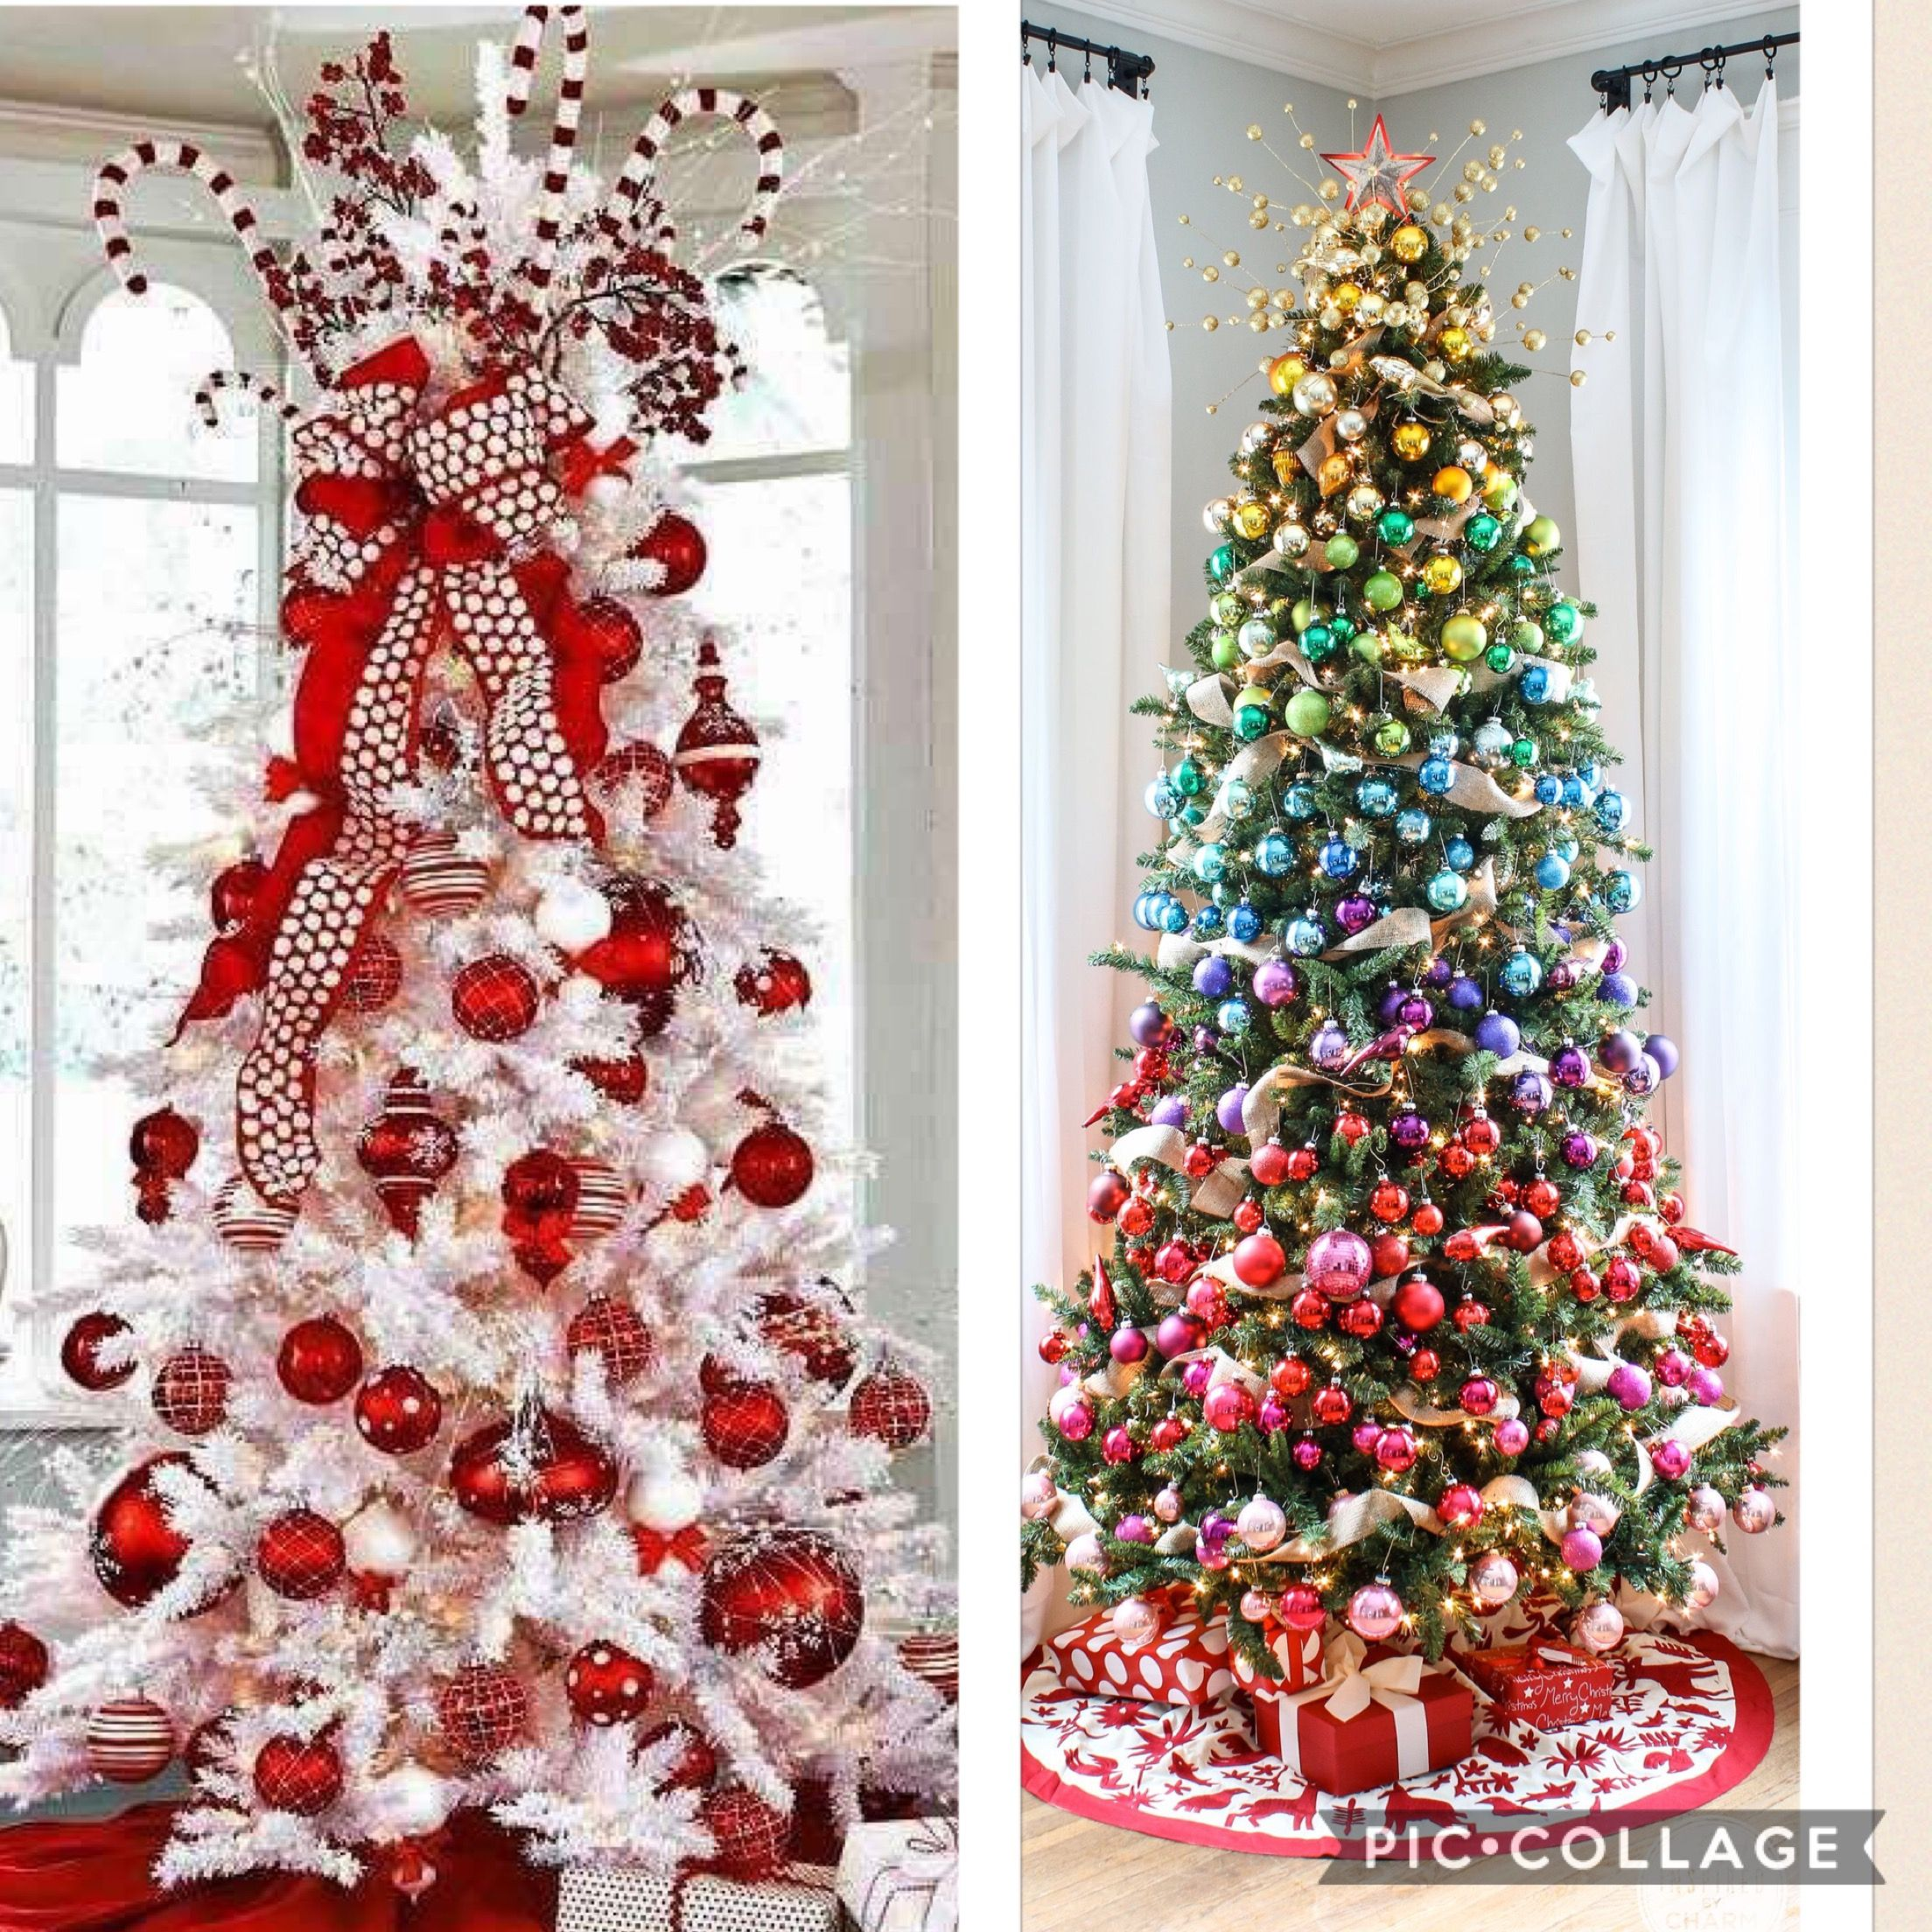 How To Decorate A Christmas Tree With Balls Uncluttered Tree Vs Cluttered Tree Few Balls Vs All Balls Simple